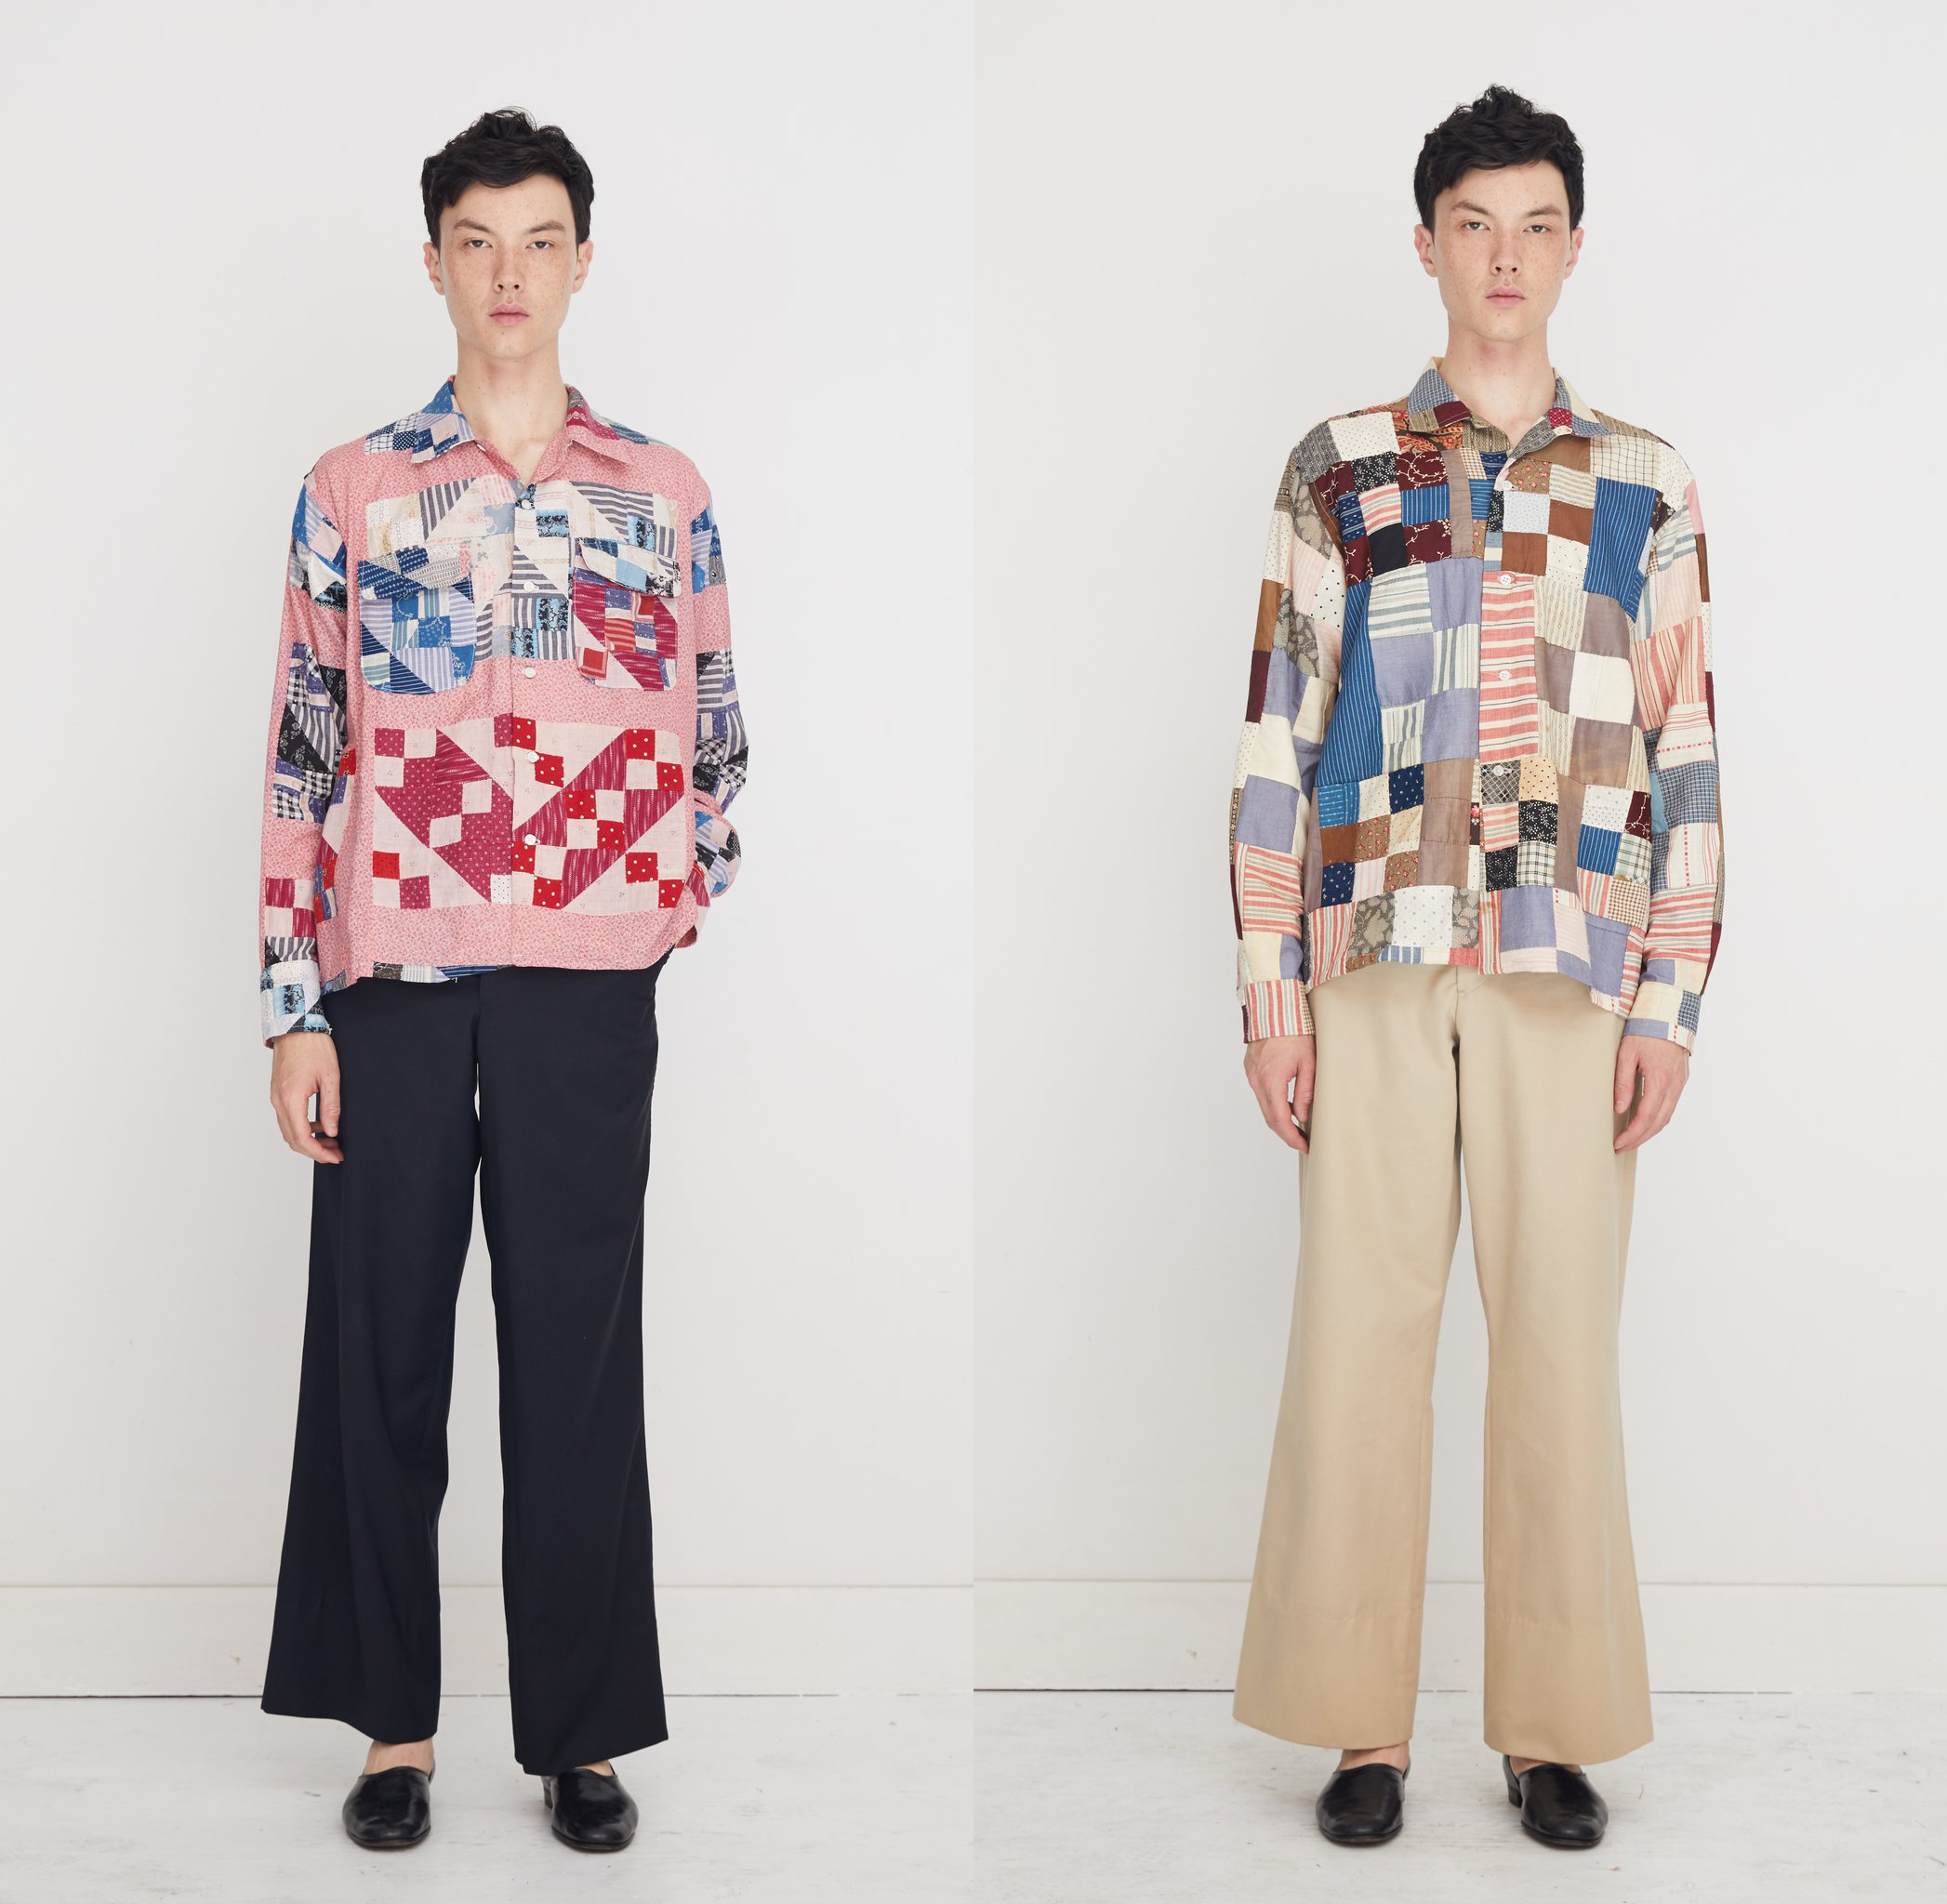 Patchwork quilt shirts currently for sale from Bode. Left: made from a pre-1940s anvil quilt, popular in the 1890s to celebrate a common tool of the trades at the time. Right: made from late 1800s calico and stripe quilt top fabric.